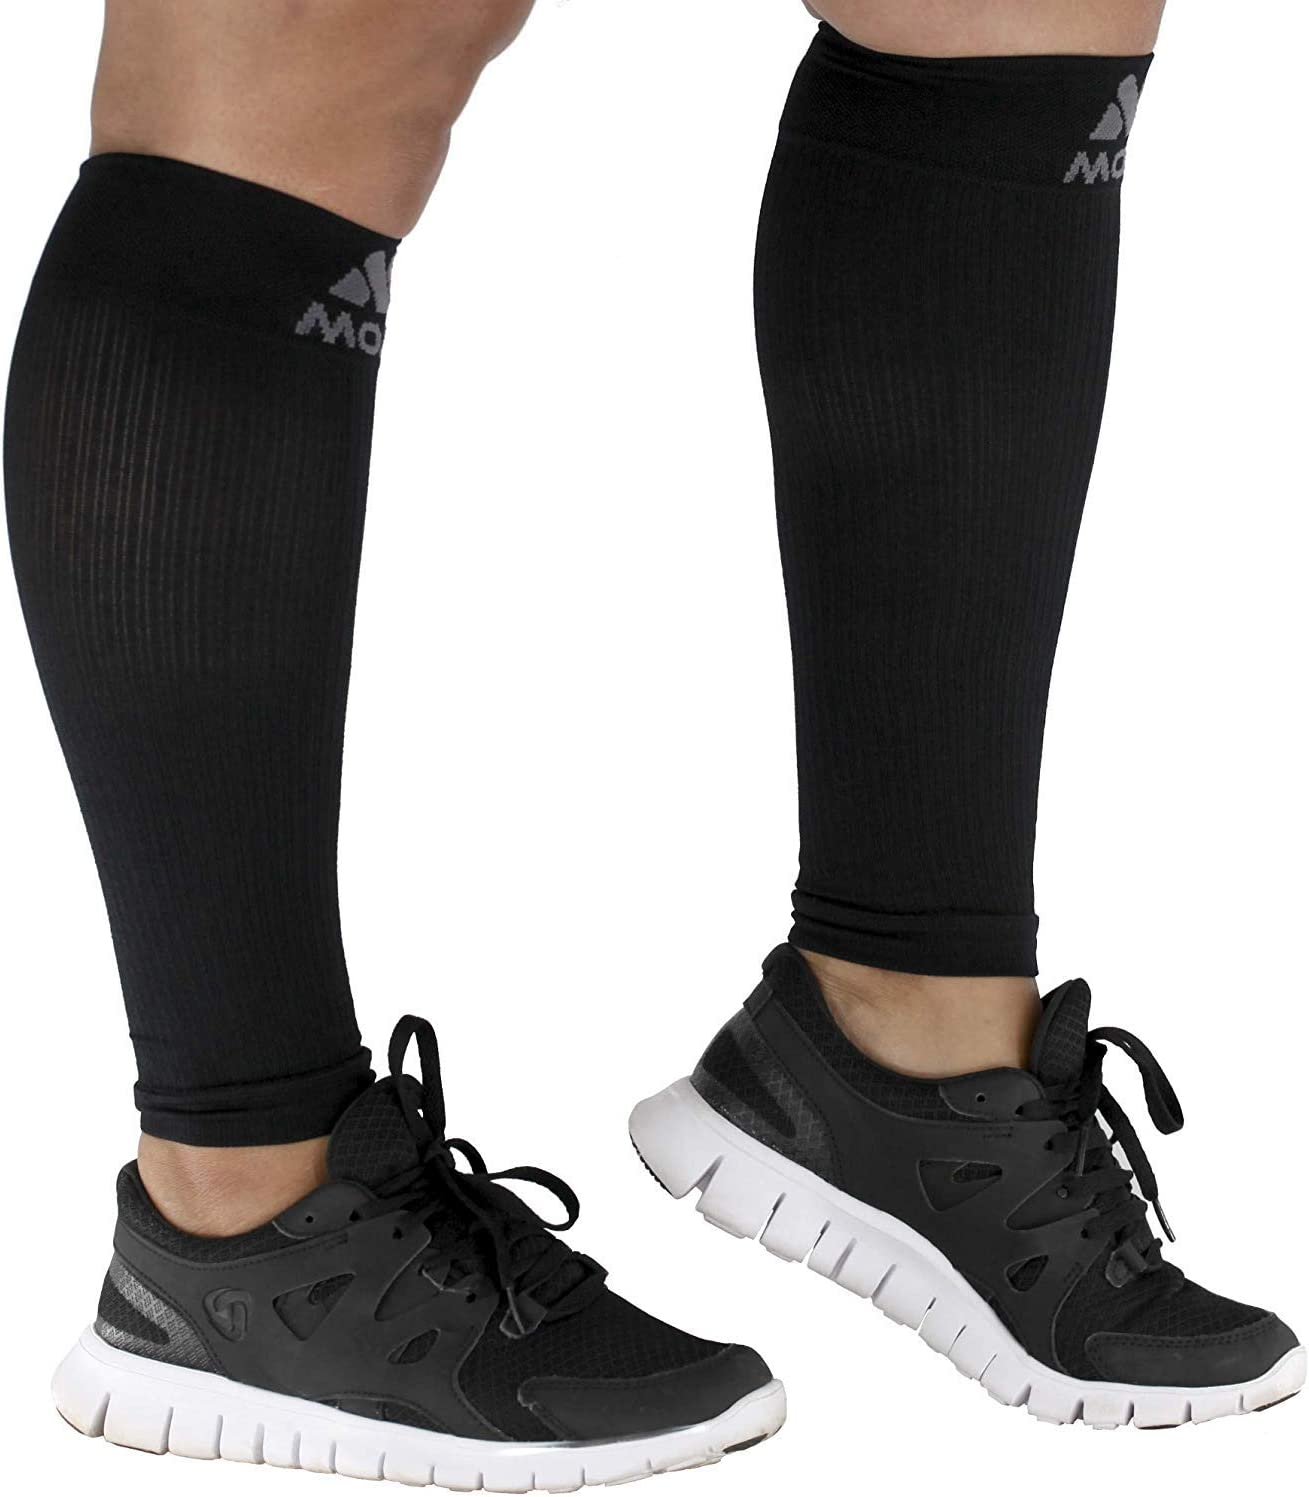 20-30mHg Black 6-XL Mojo Compression Extra Wide Calf Sleeves for Women and Men